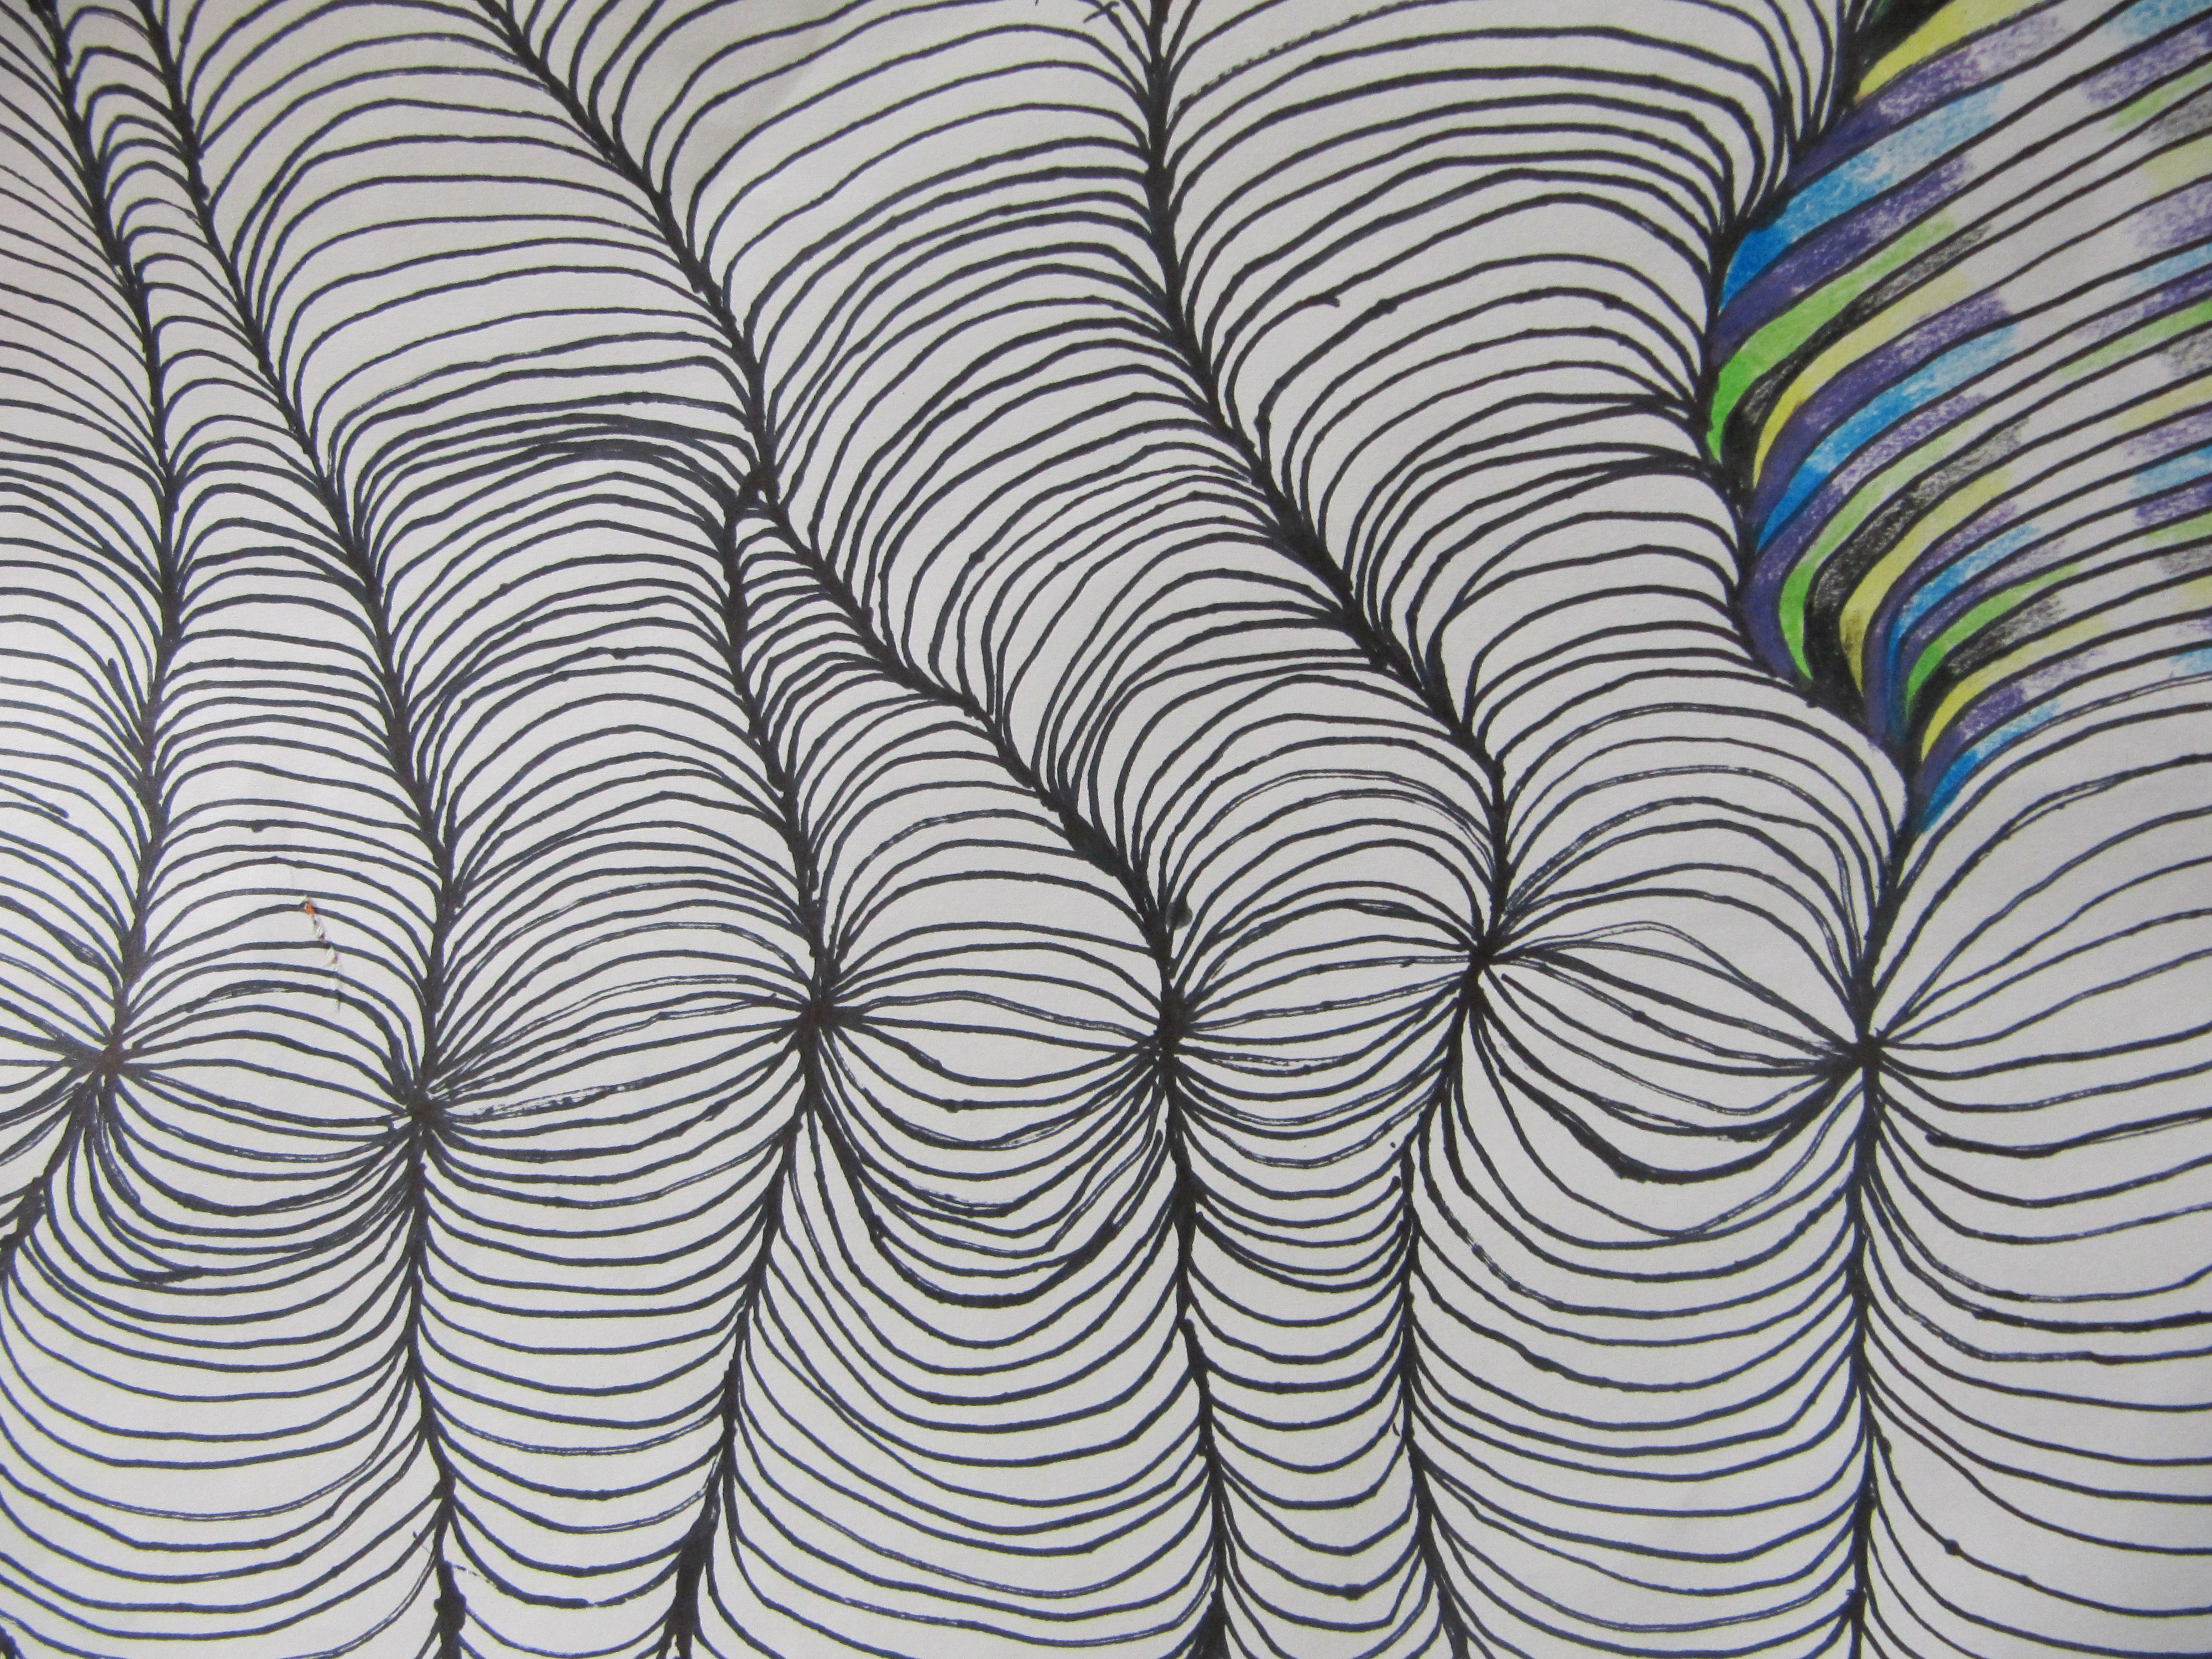 Drawn optical illusion wavy line With GMG Optical Mr Illusions